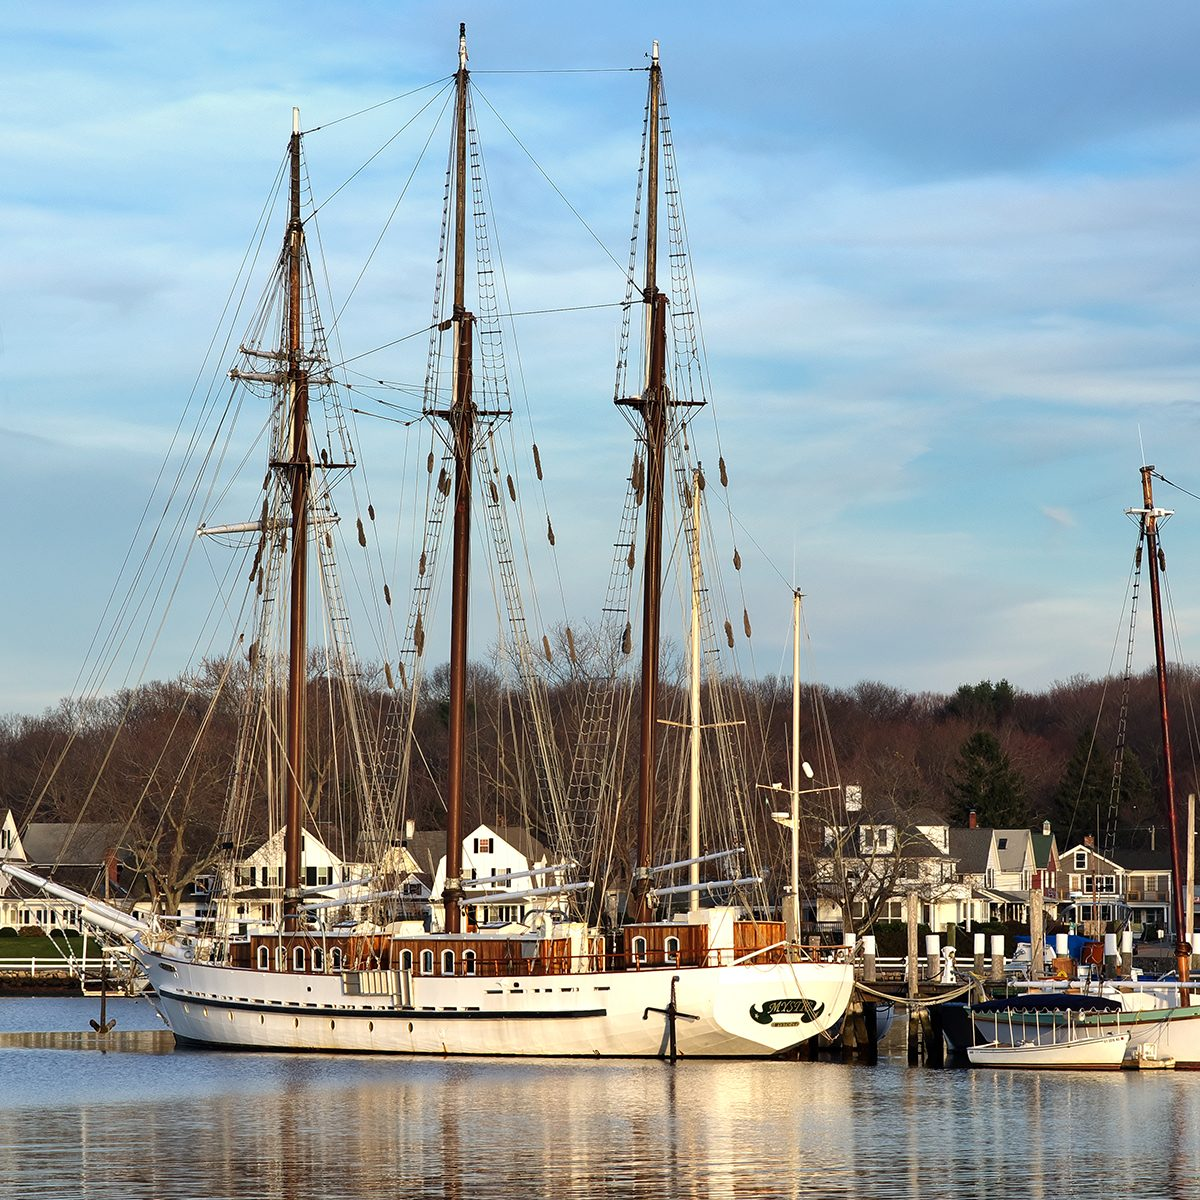 The Old Ship in Mystic Seaport